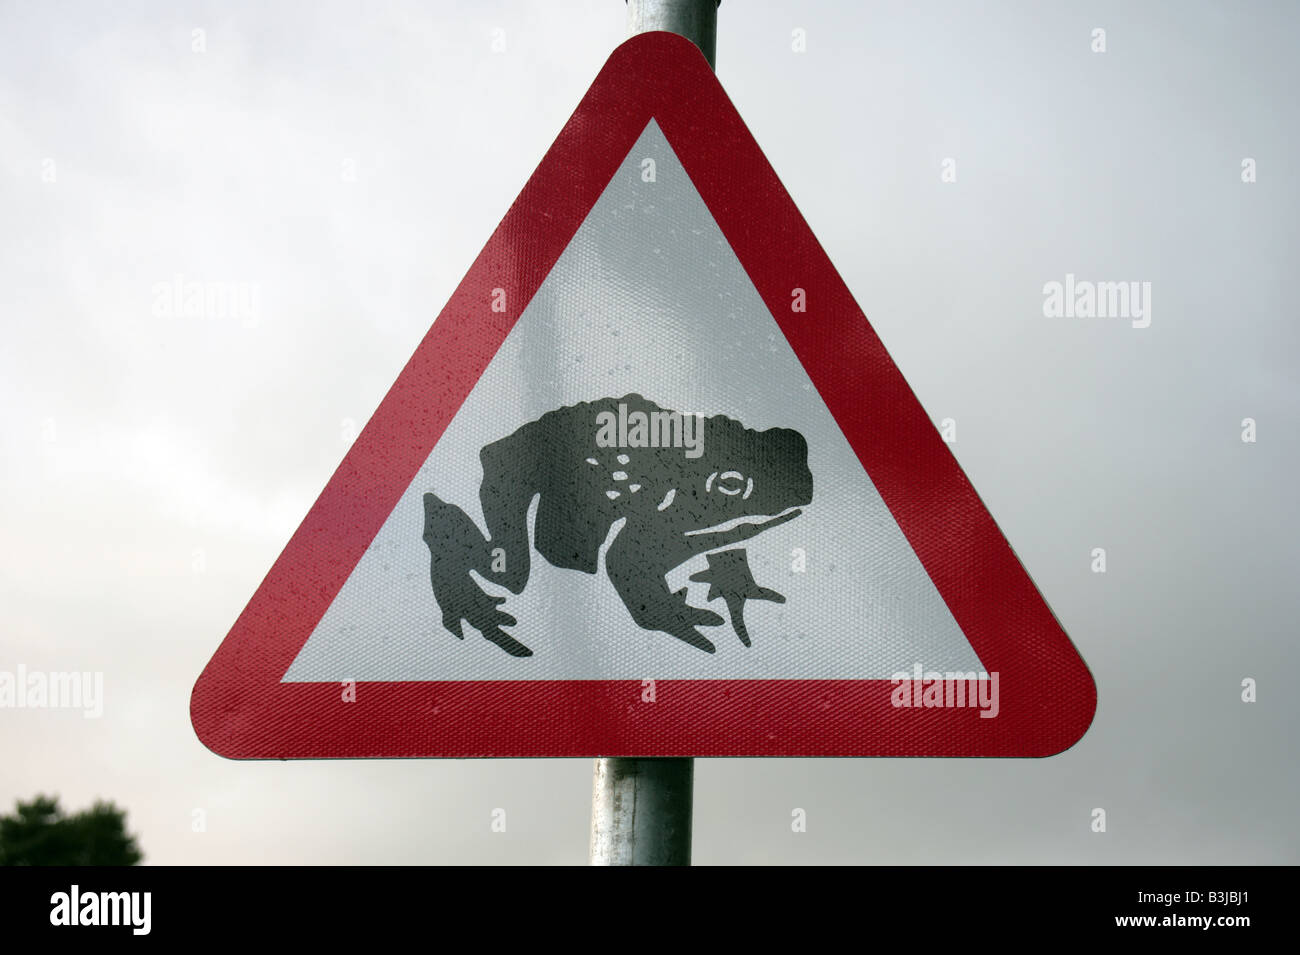 toads crossing warning sign Machynnleth Wales - Stock Image